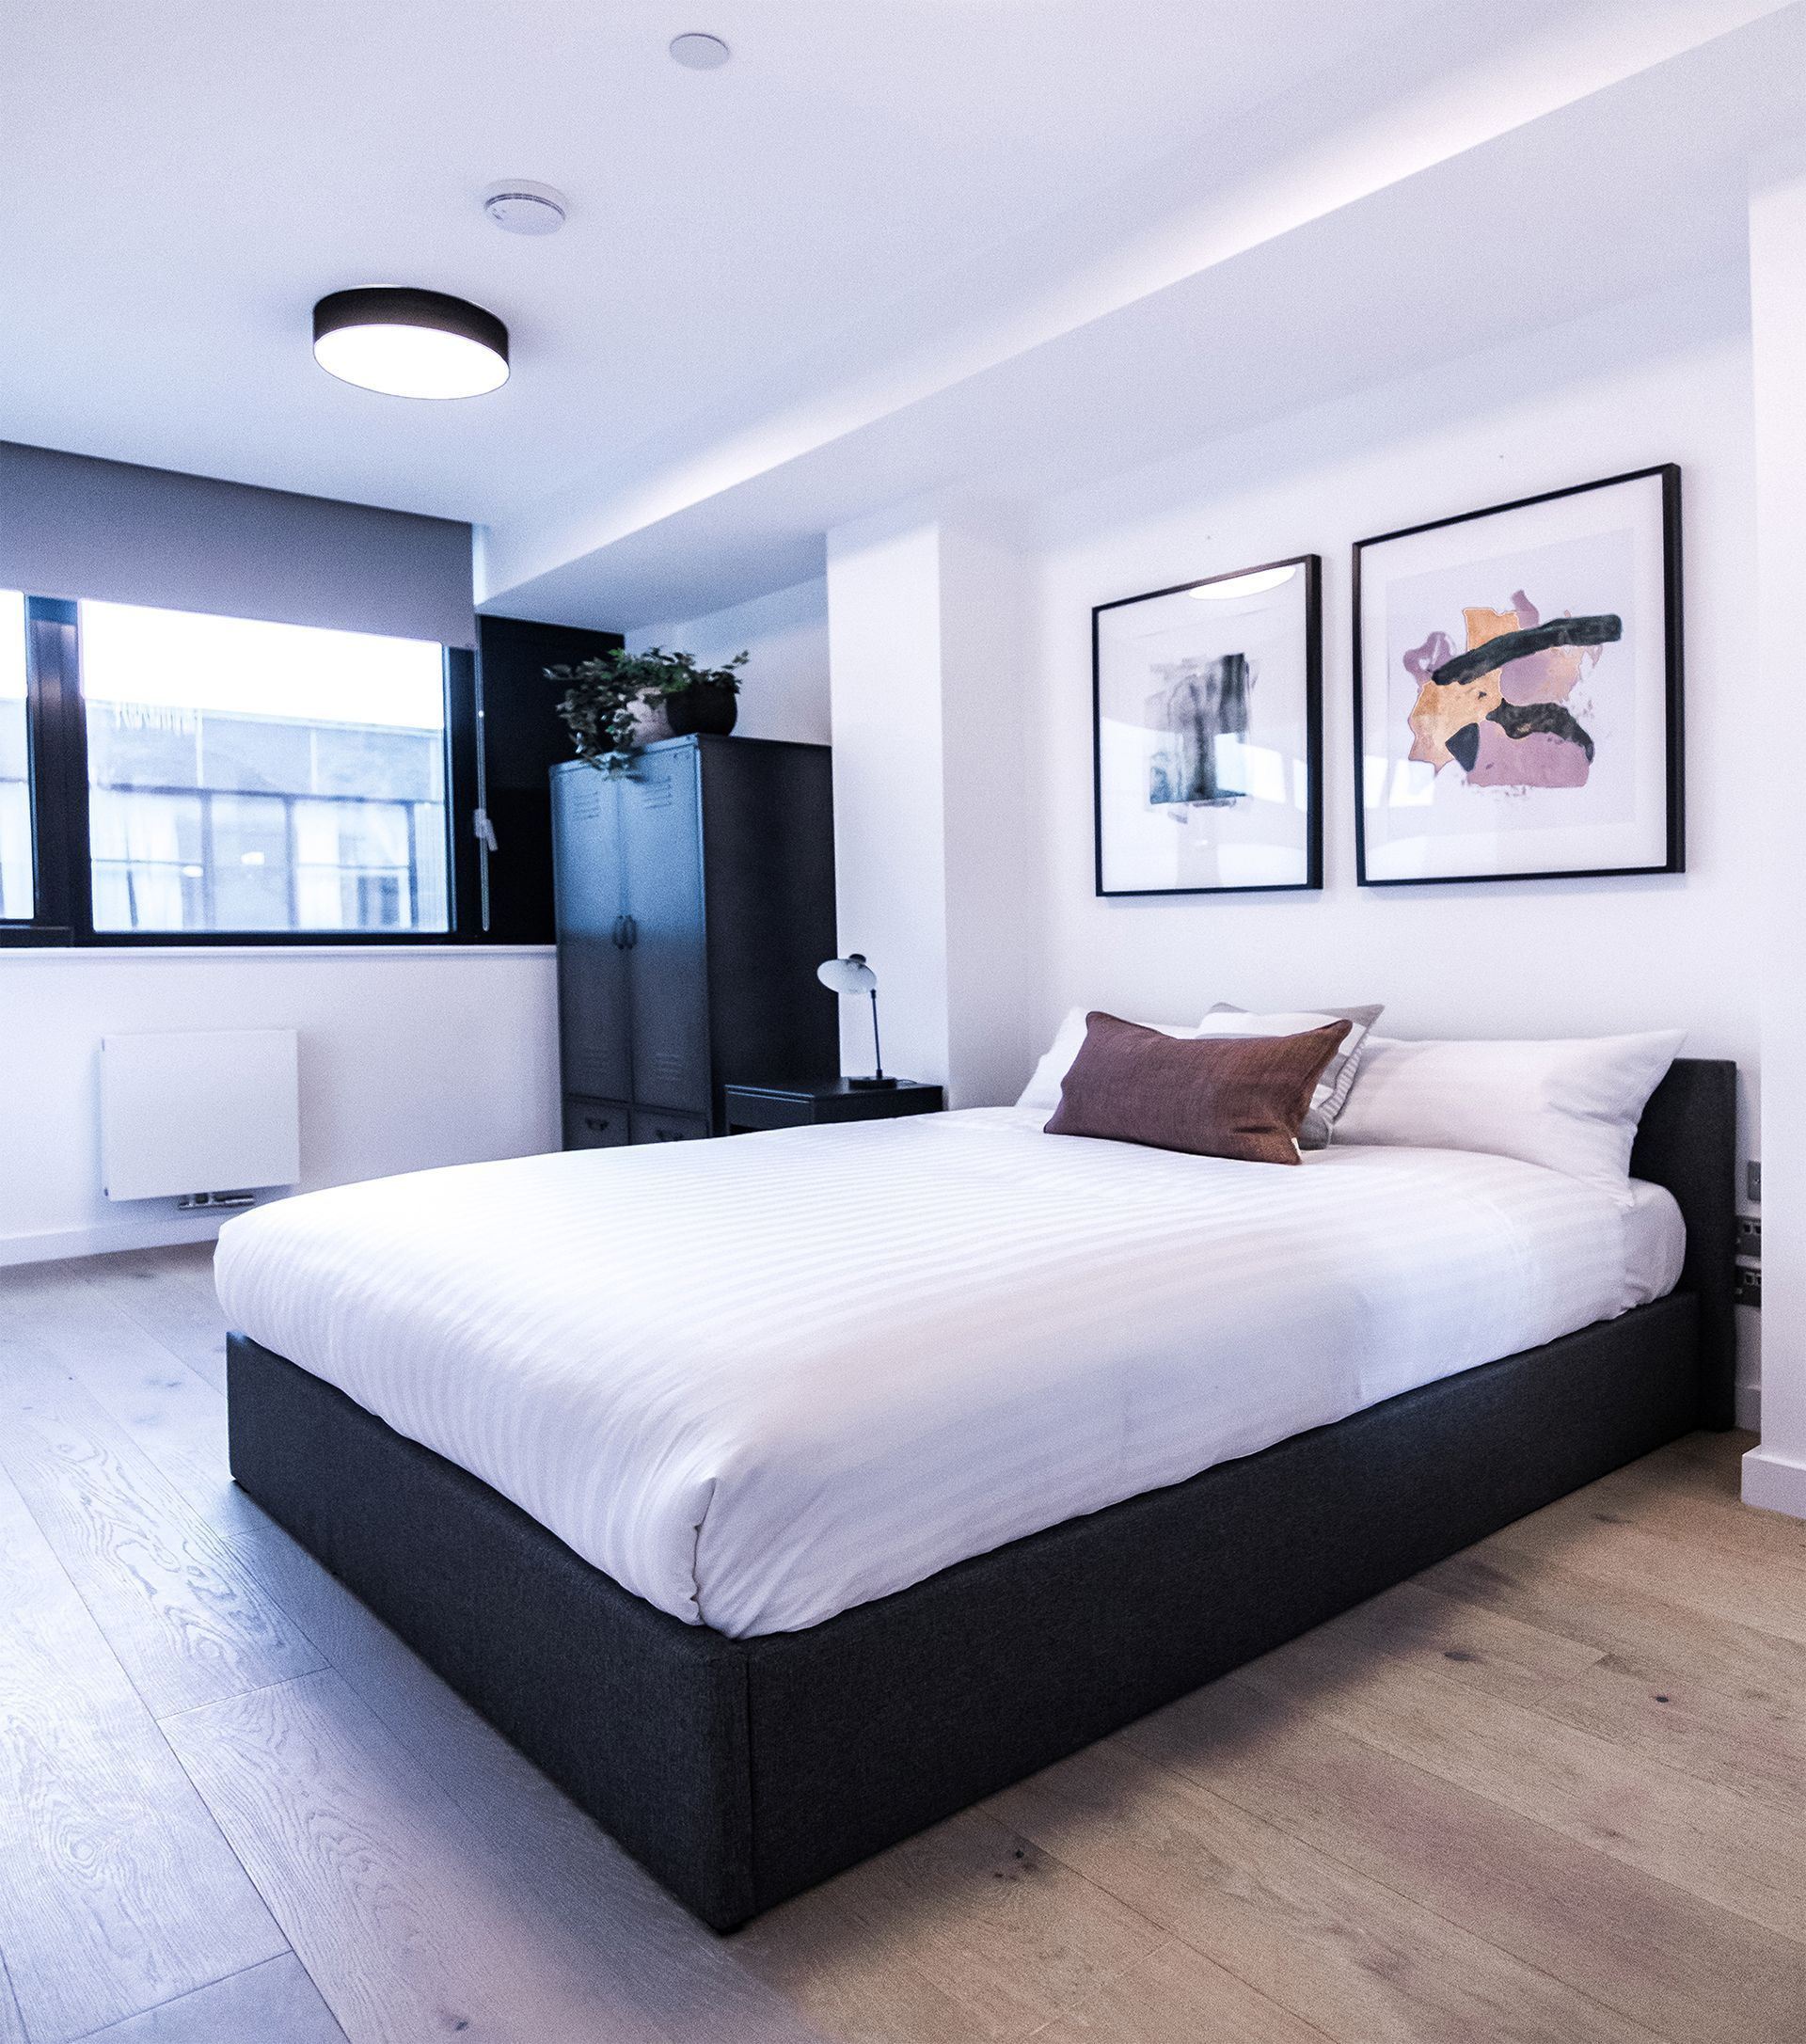 1 Bedroom apartment to rent in London HIL-HH-0327